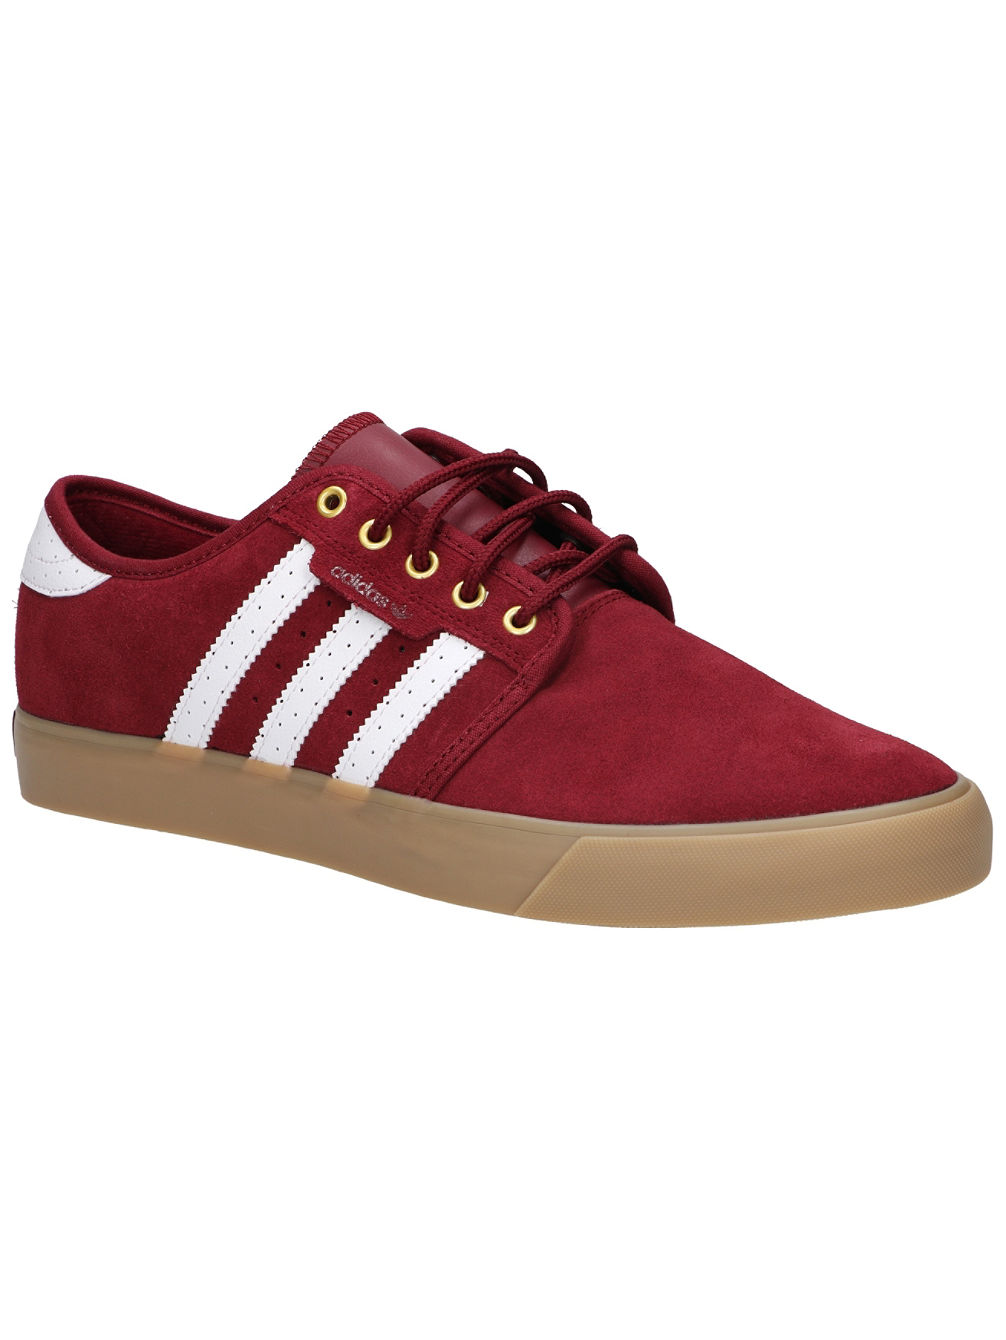 7d71afb162a Buy adidas Skateboarding Seeley Skate Shoes online at blue-tomato.com